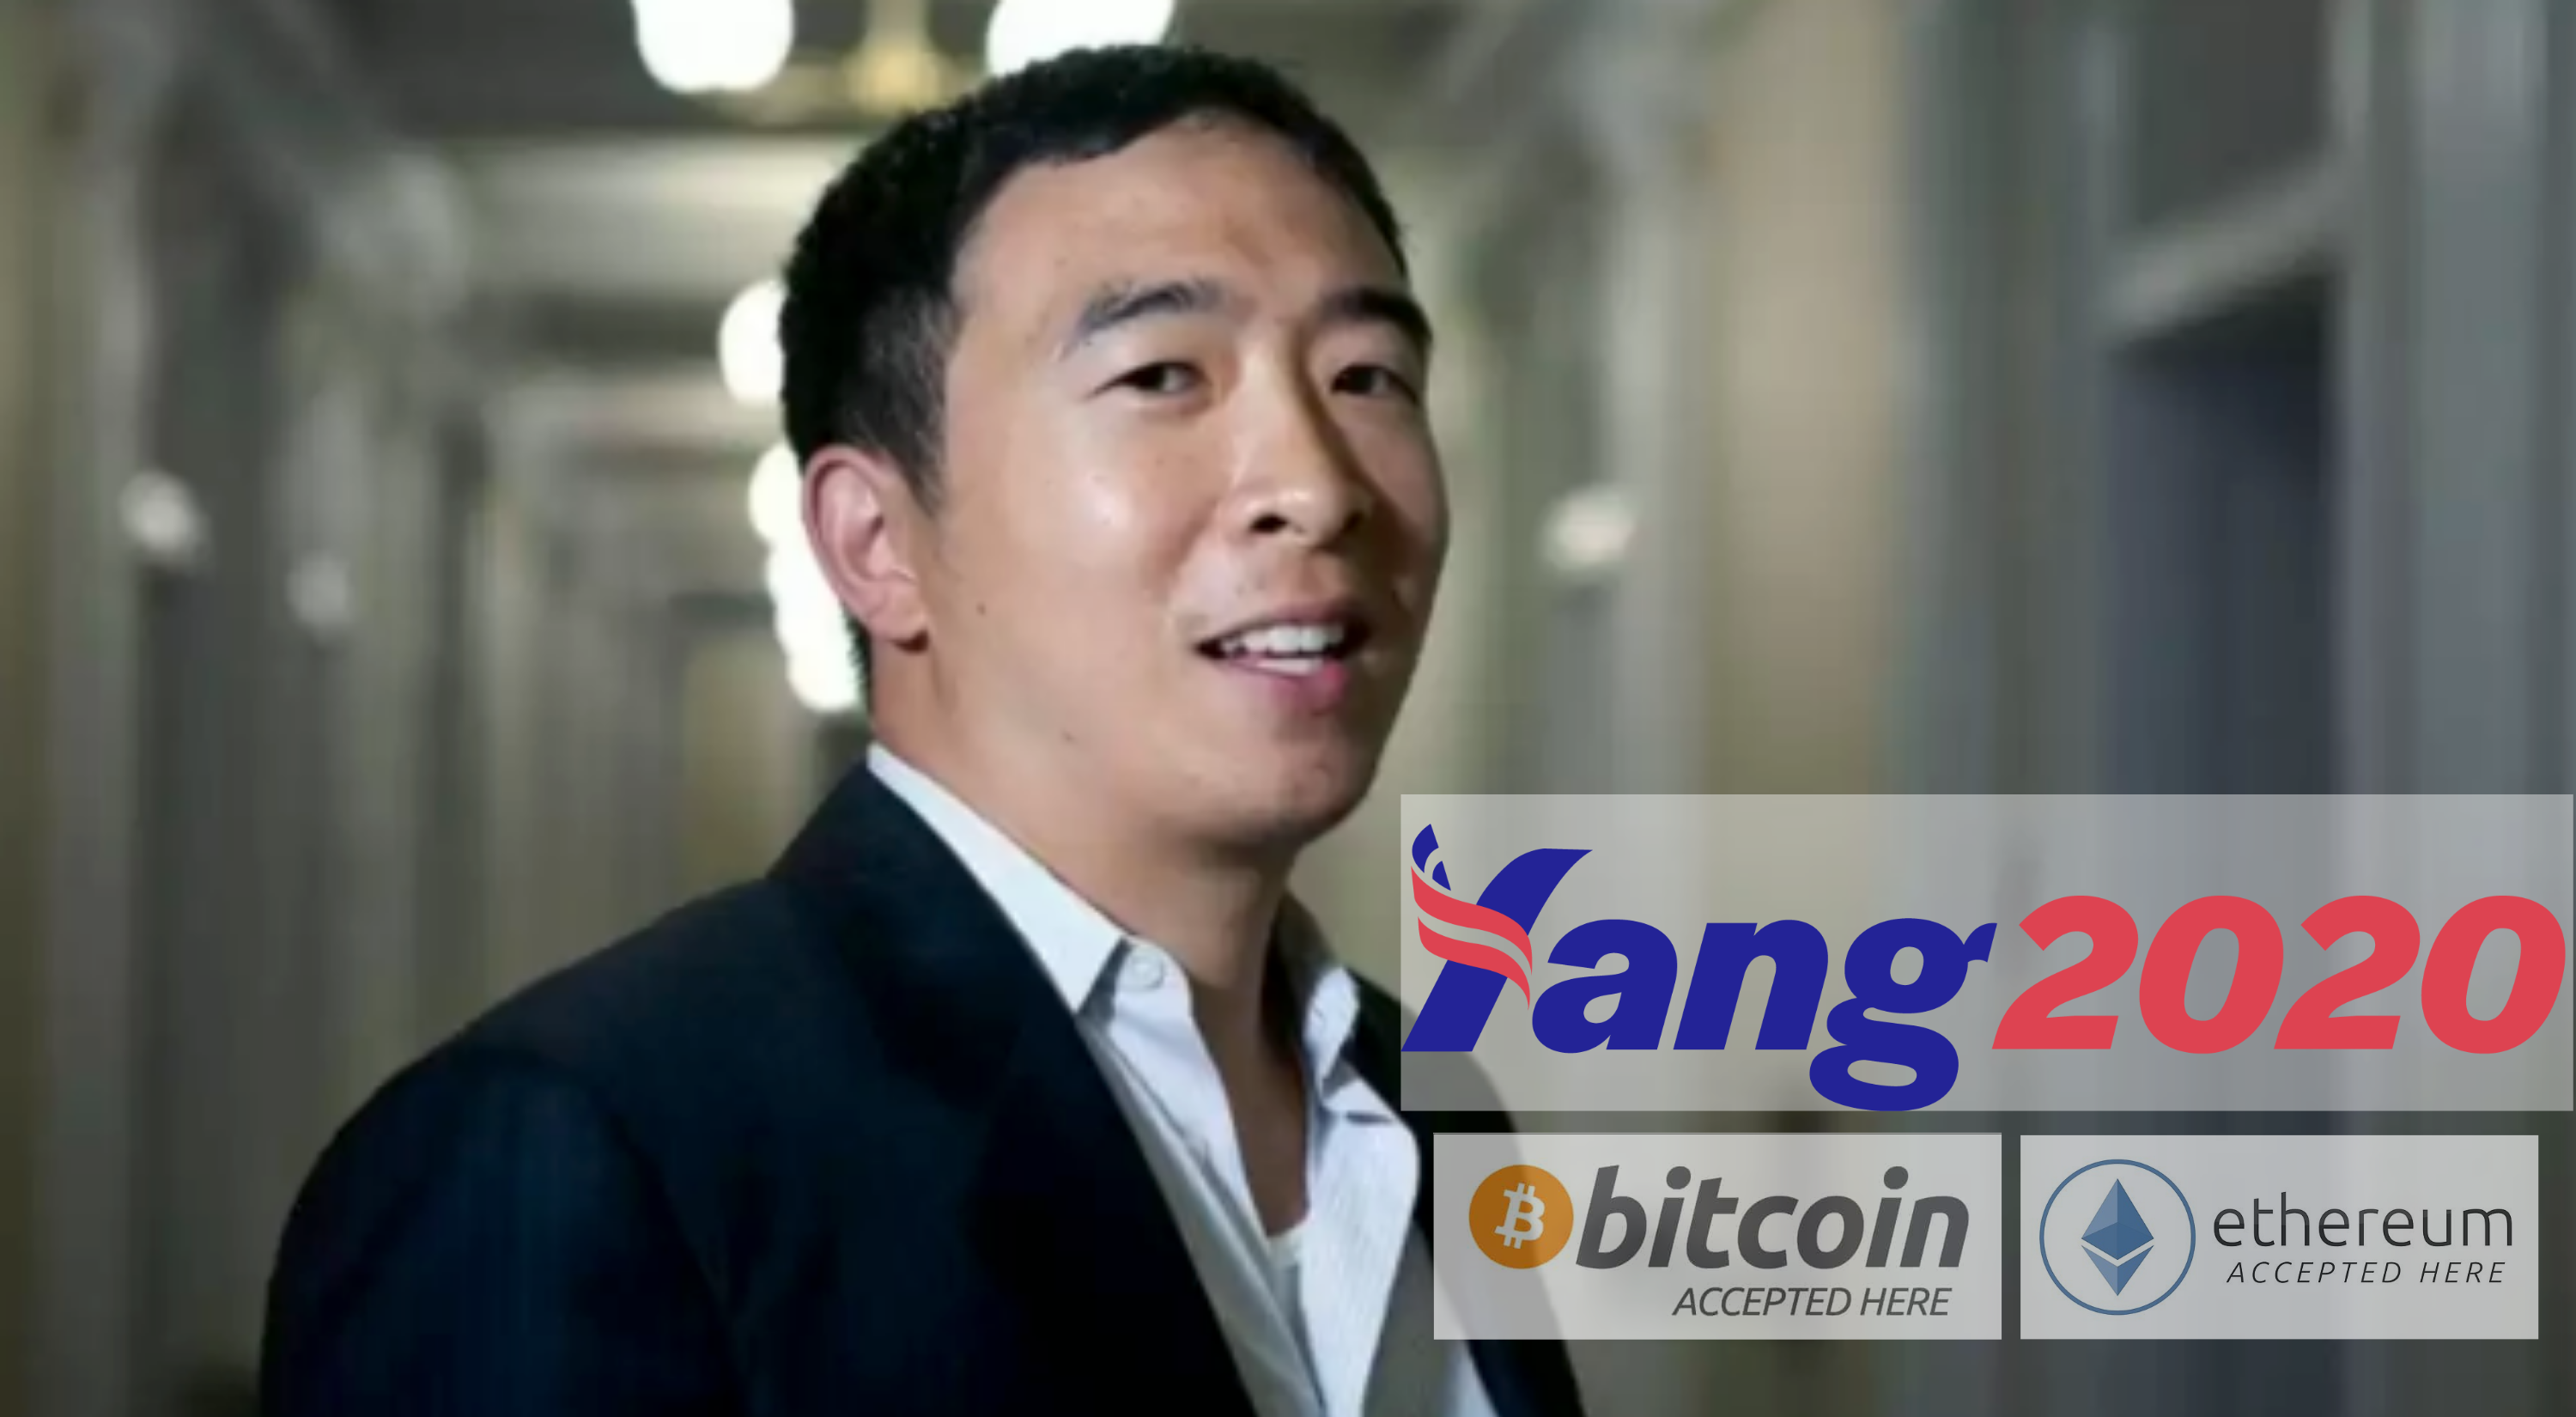 Andrew Yang Accepts Bitcoin for Campaign Donations